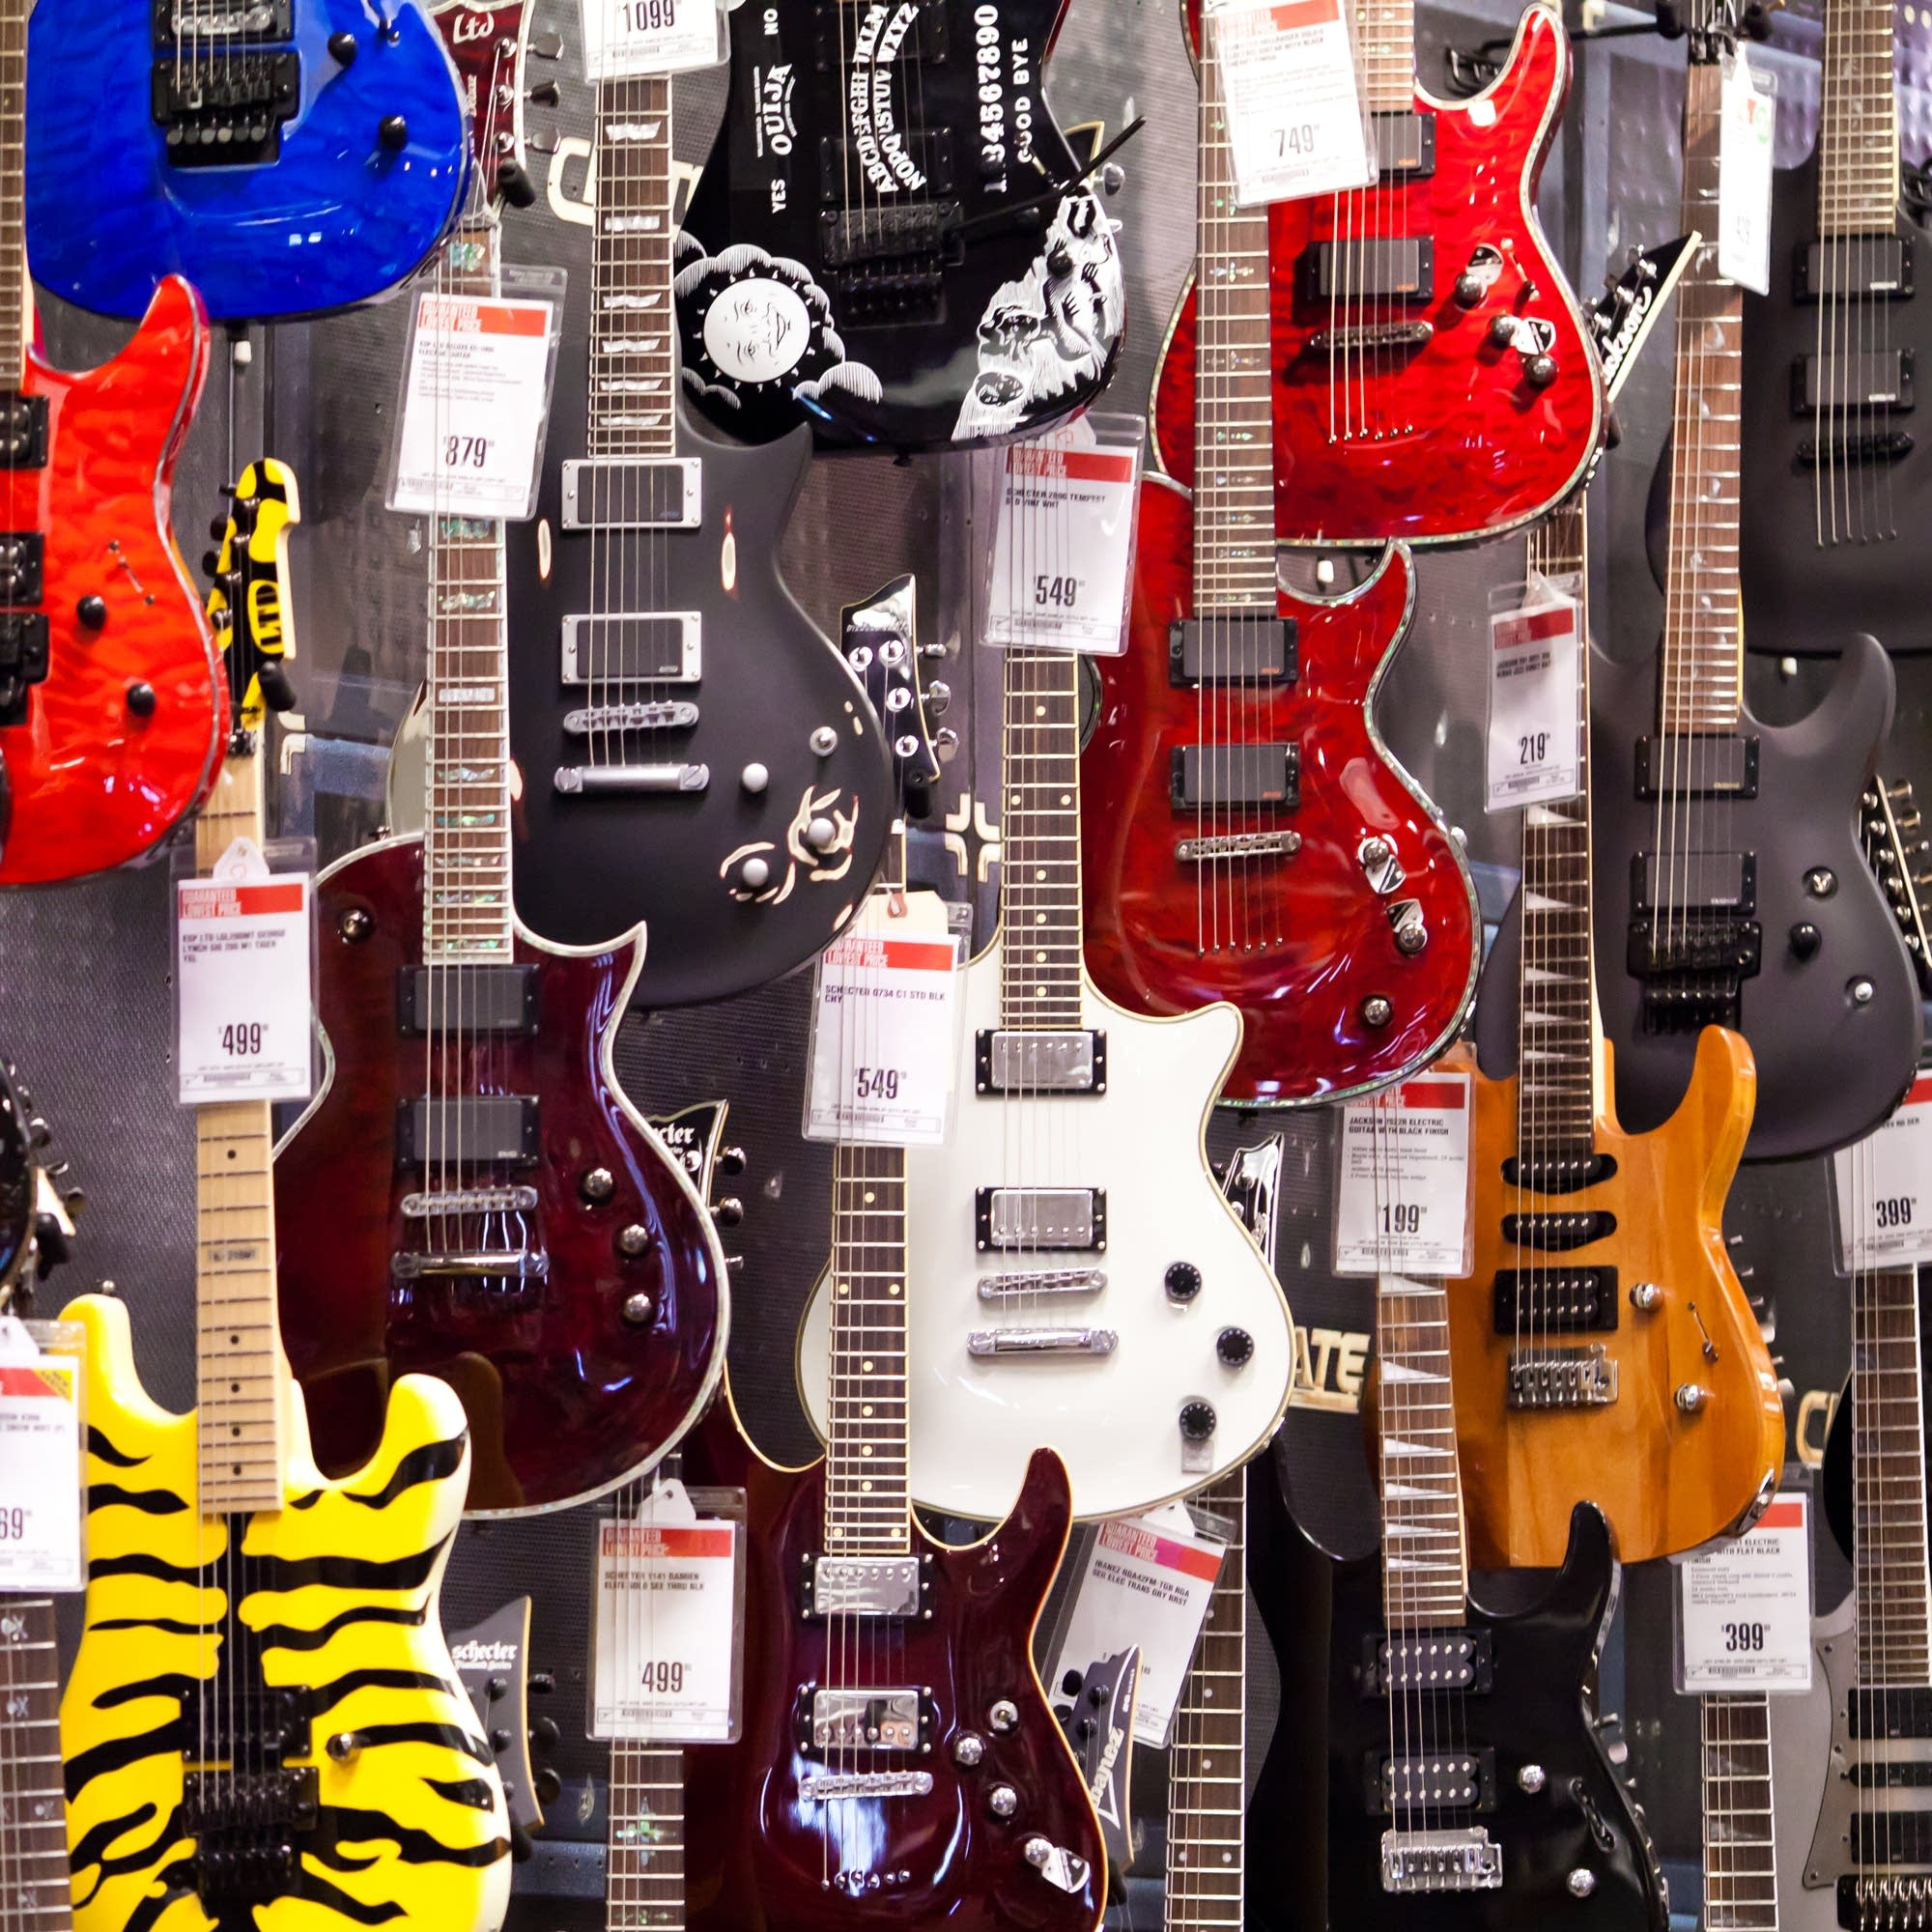 Electric guitars on sale at a Guitar Center in 2010.